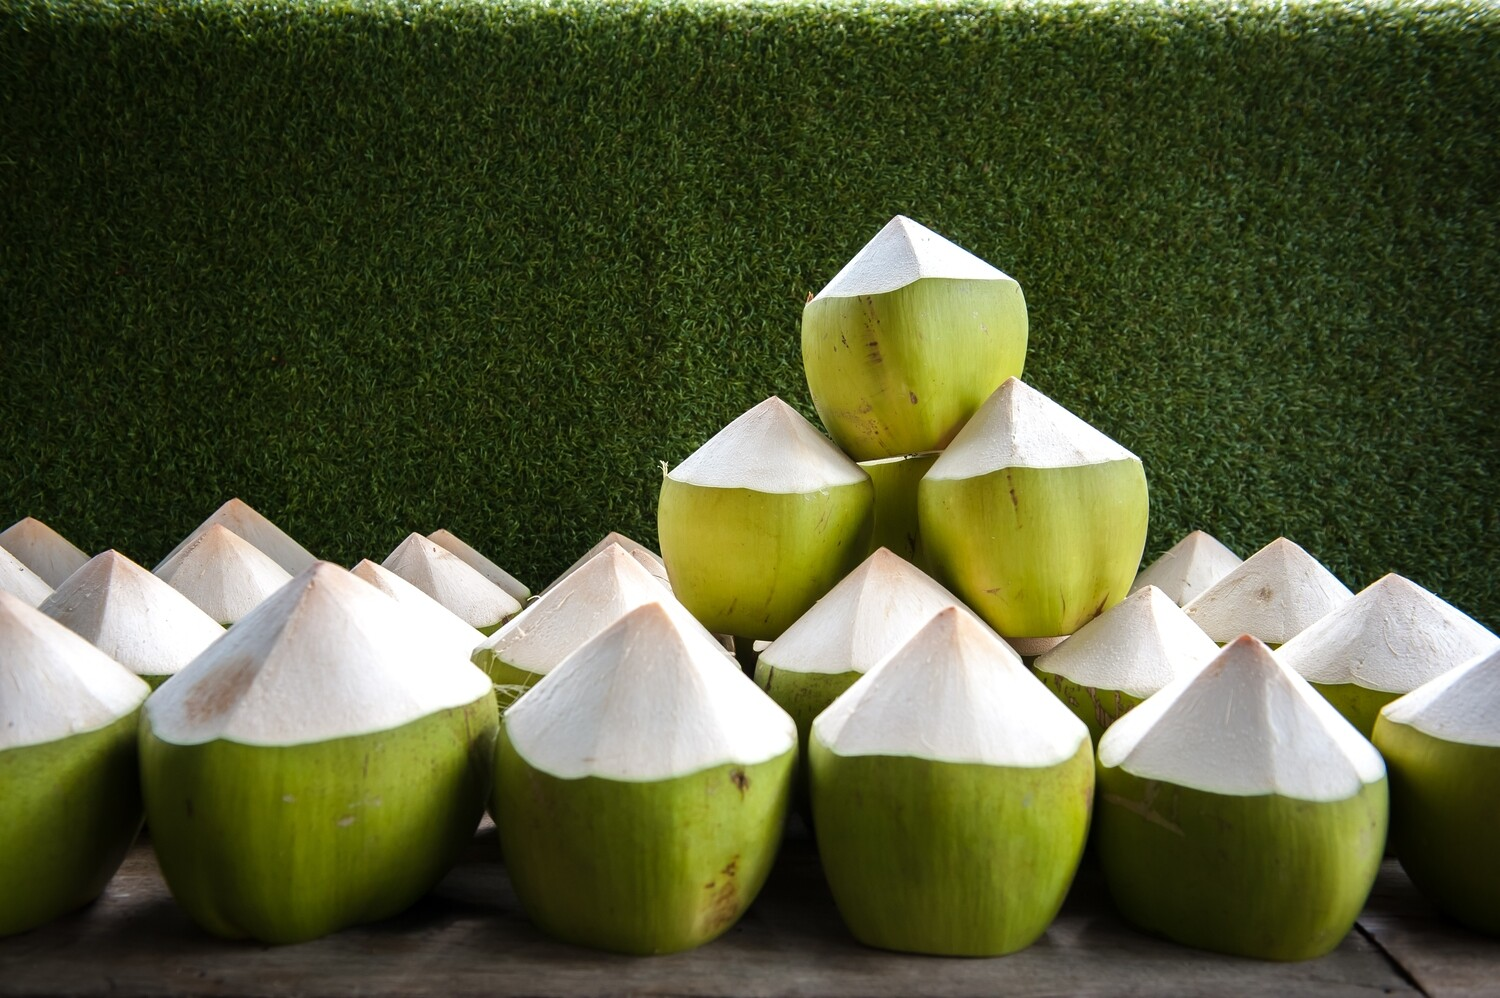 Peeled Coconut - Green, Young, Organic - 4 Nuts